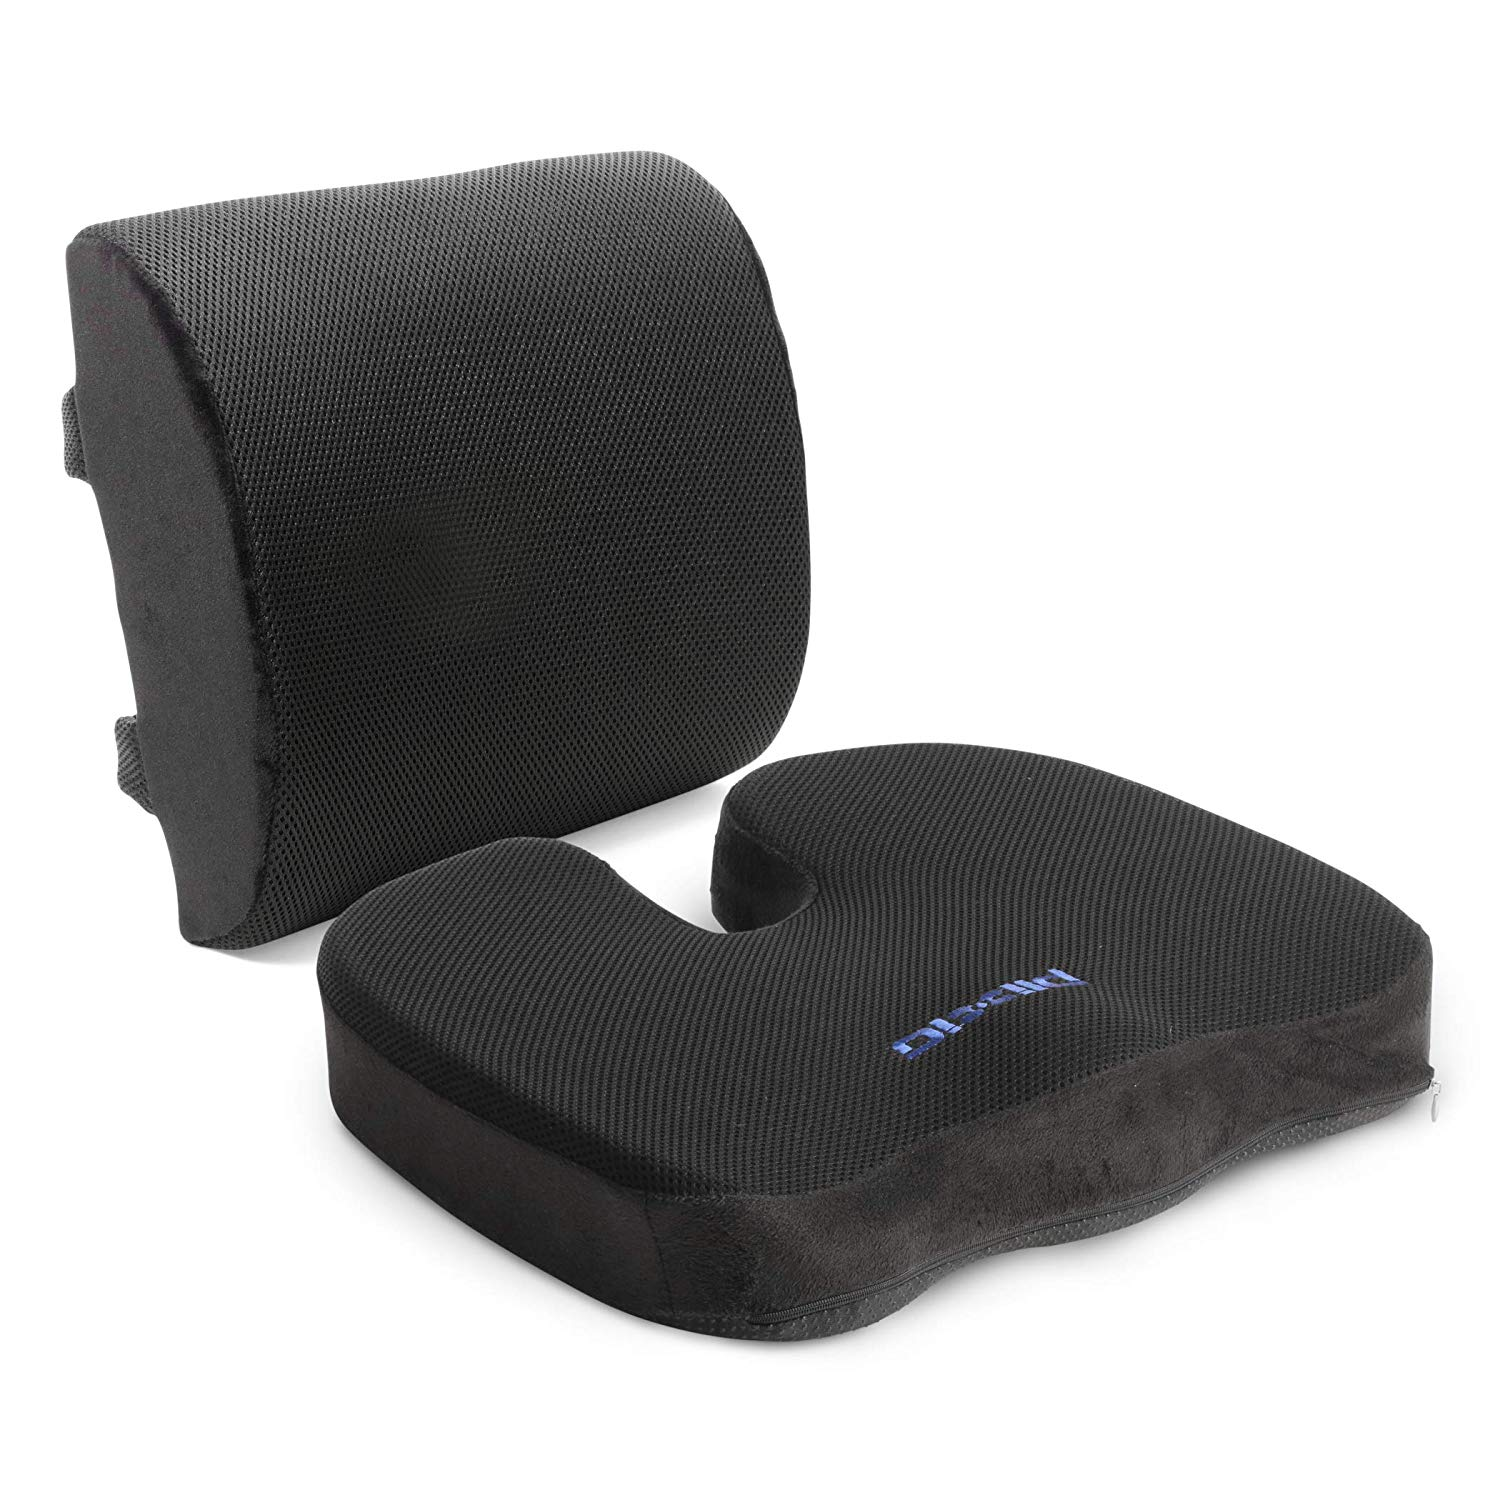 Lumbar Support Pillow For Chair Details About Plixio Memory Foam Seat Cushion And Lumbar Back Support Pillow For Office Or Car